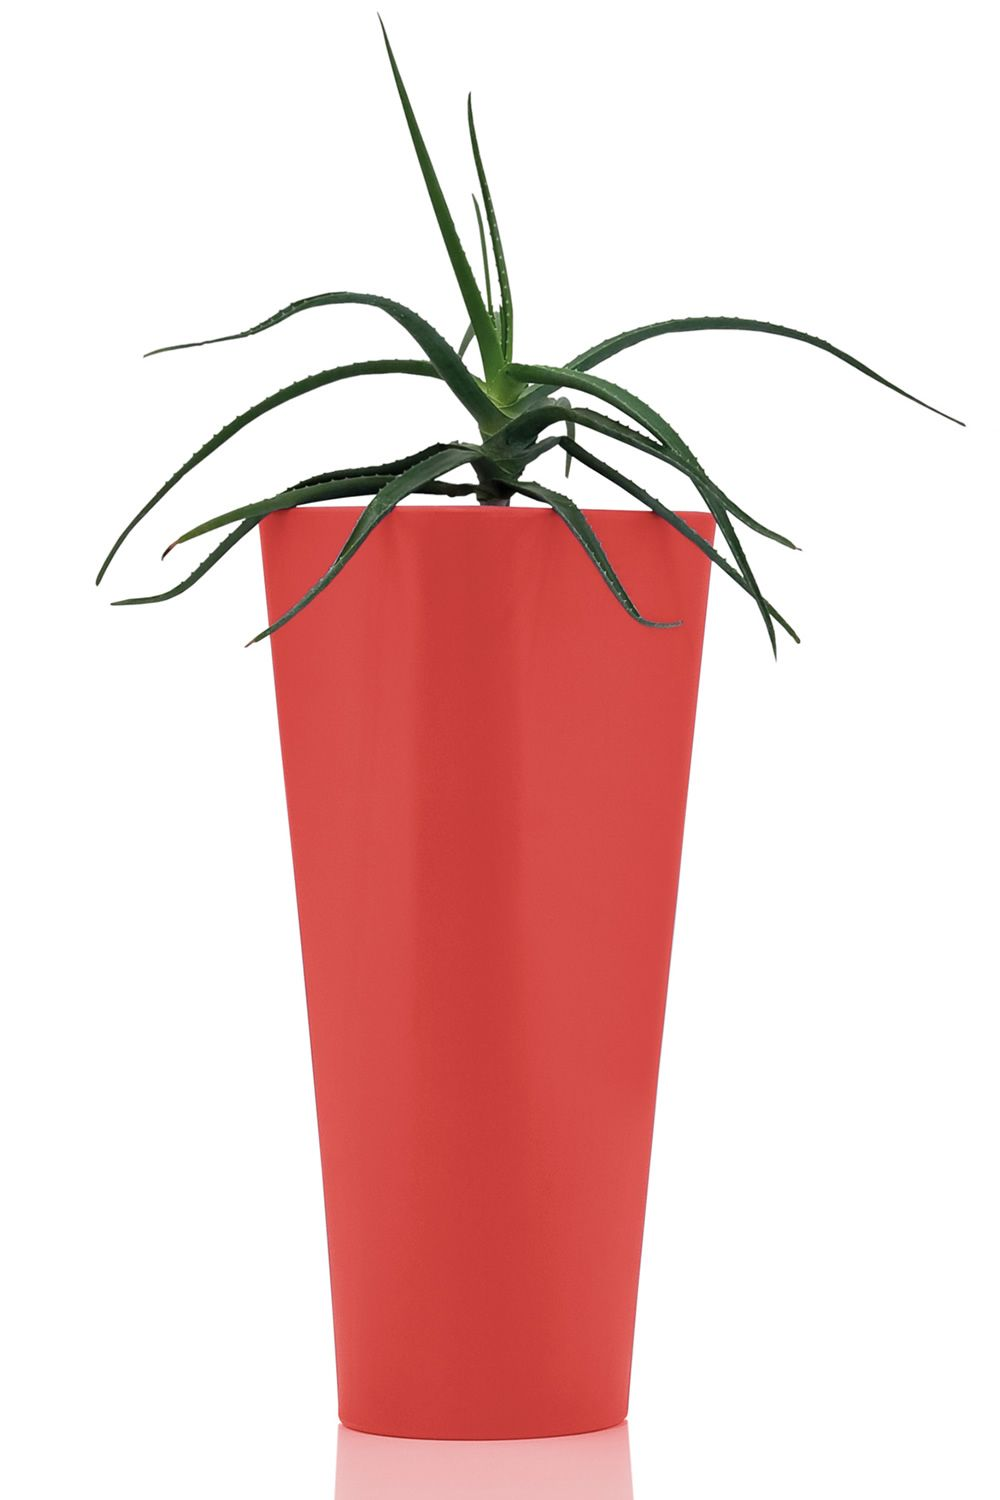 Eve Polyethylene Coral Red Version Tall